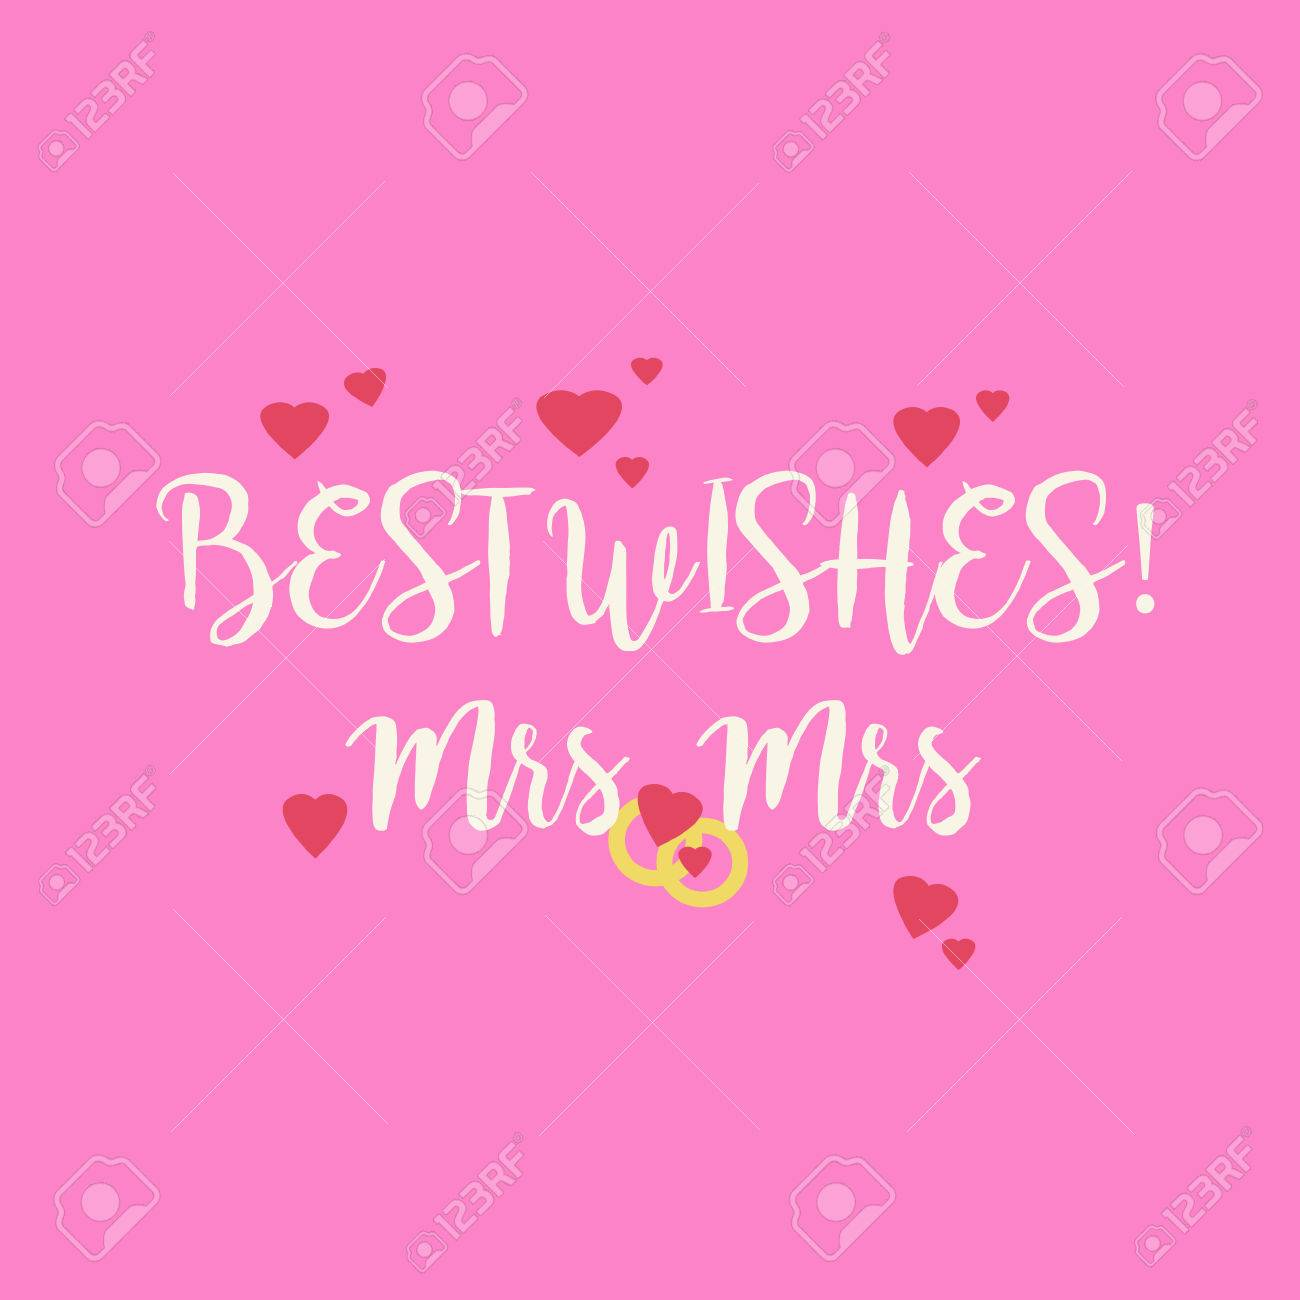 Cute wedding Best Wishes Mrs Mrs congratulations greeting card for a lesbian  couple with pink hearts